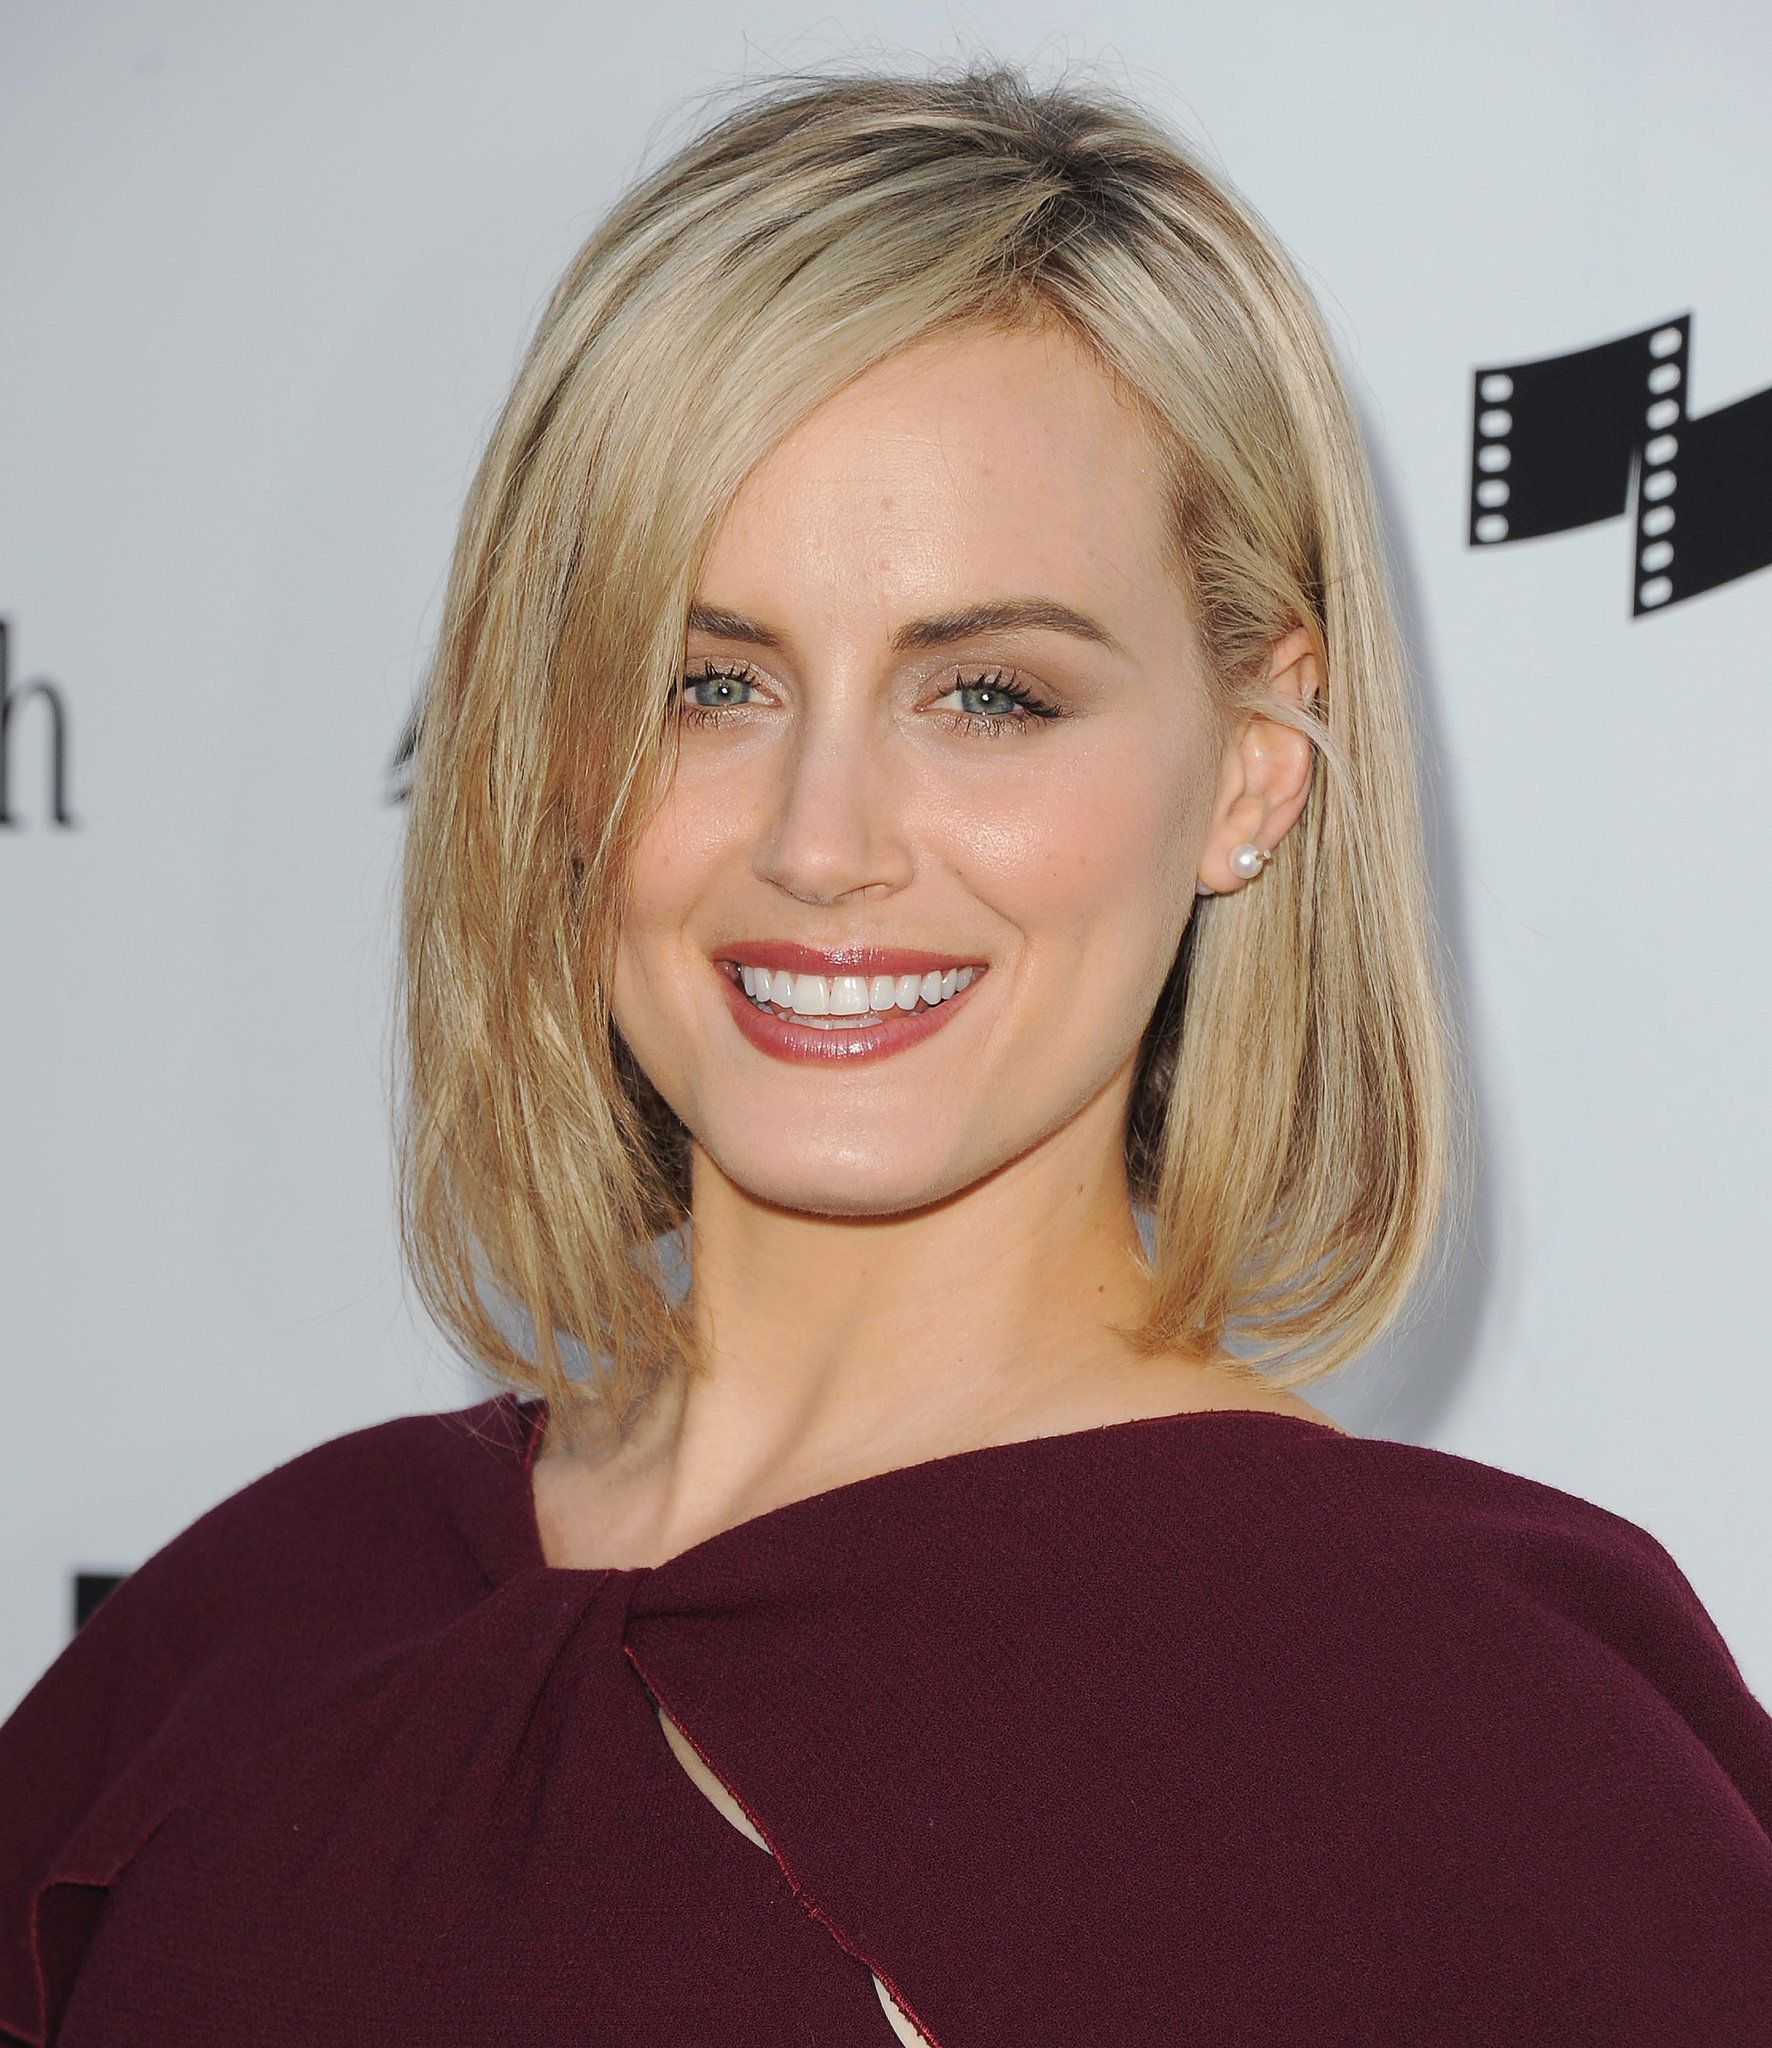 Taylor Schilling Wedding.Taylor Schilling Hair Style Taylor Schilling Celebrity Haircuts